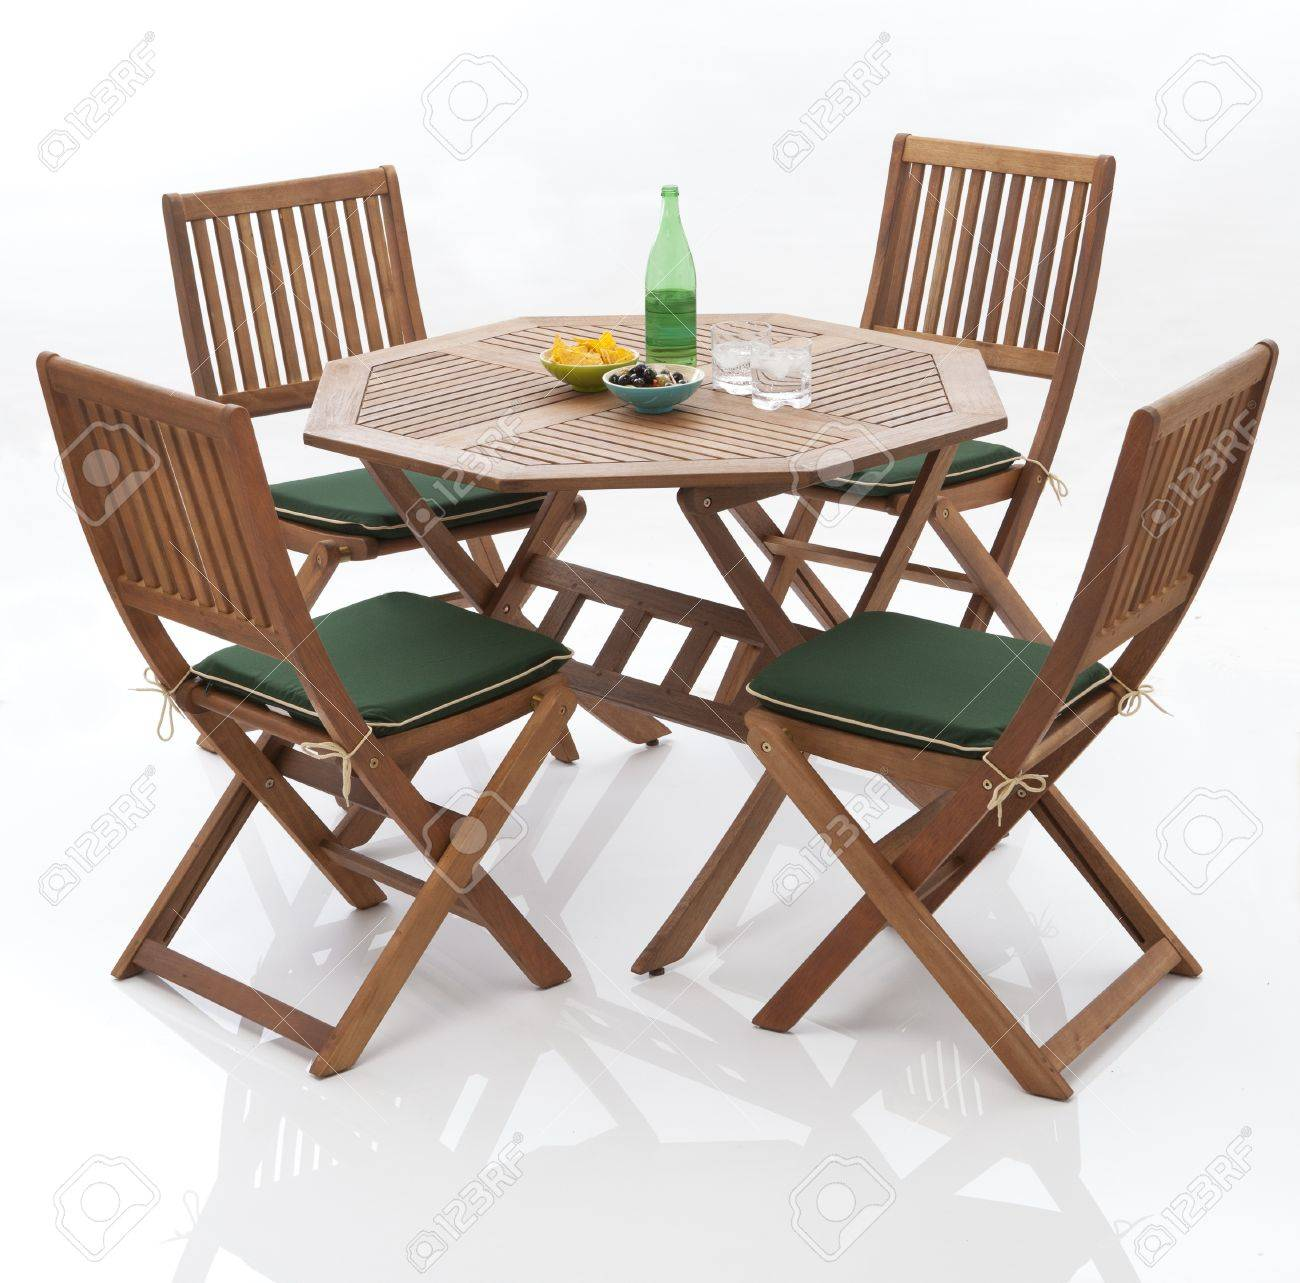 Garden table and chairs on isolated white background Stock Photo - 9856341